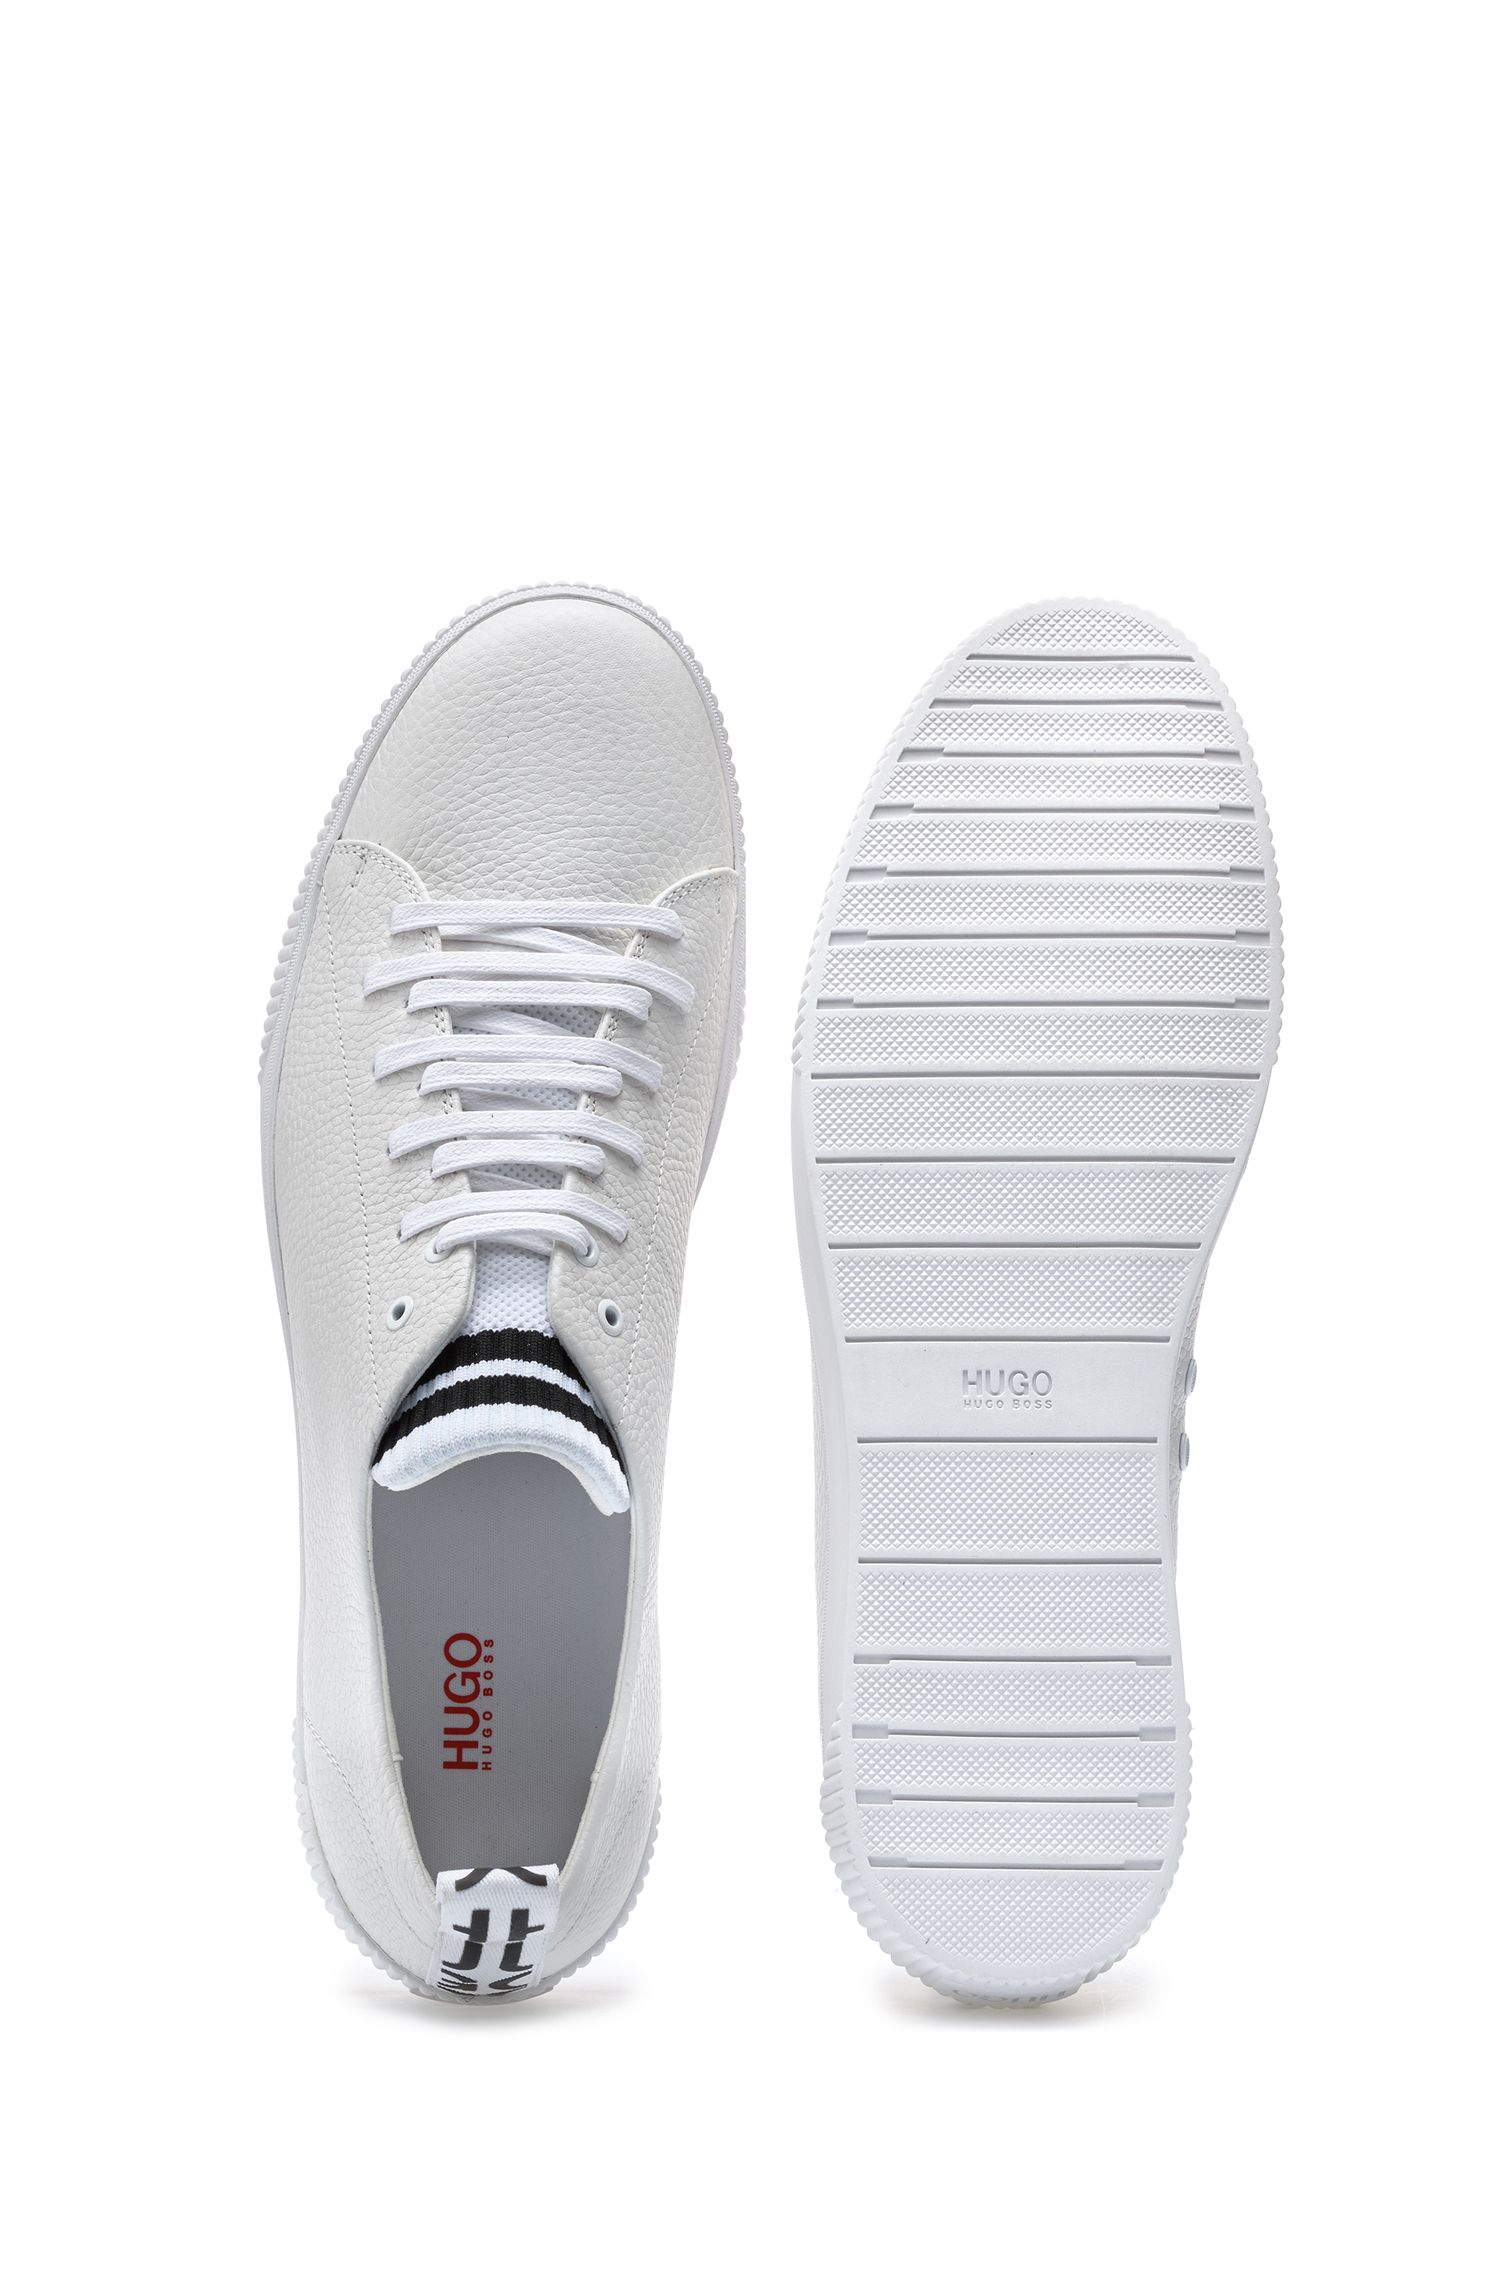 Sneakers in grained leather with original lace-up design, White